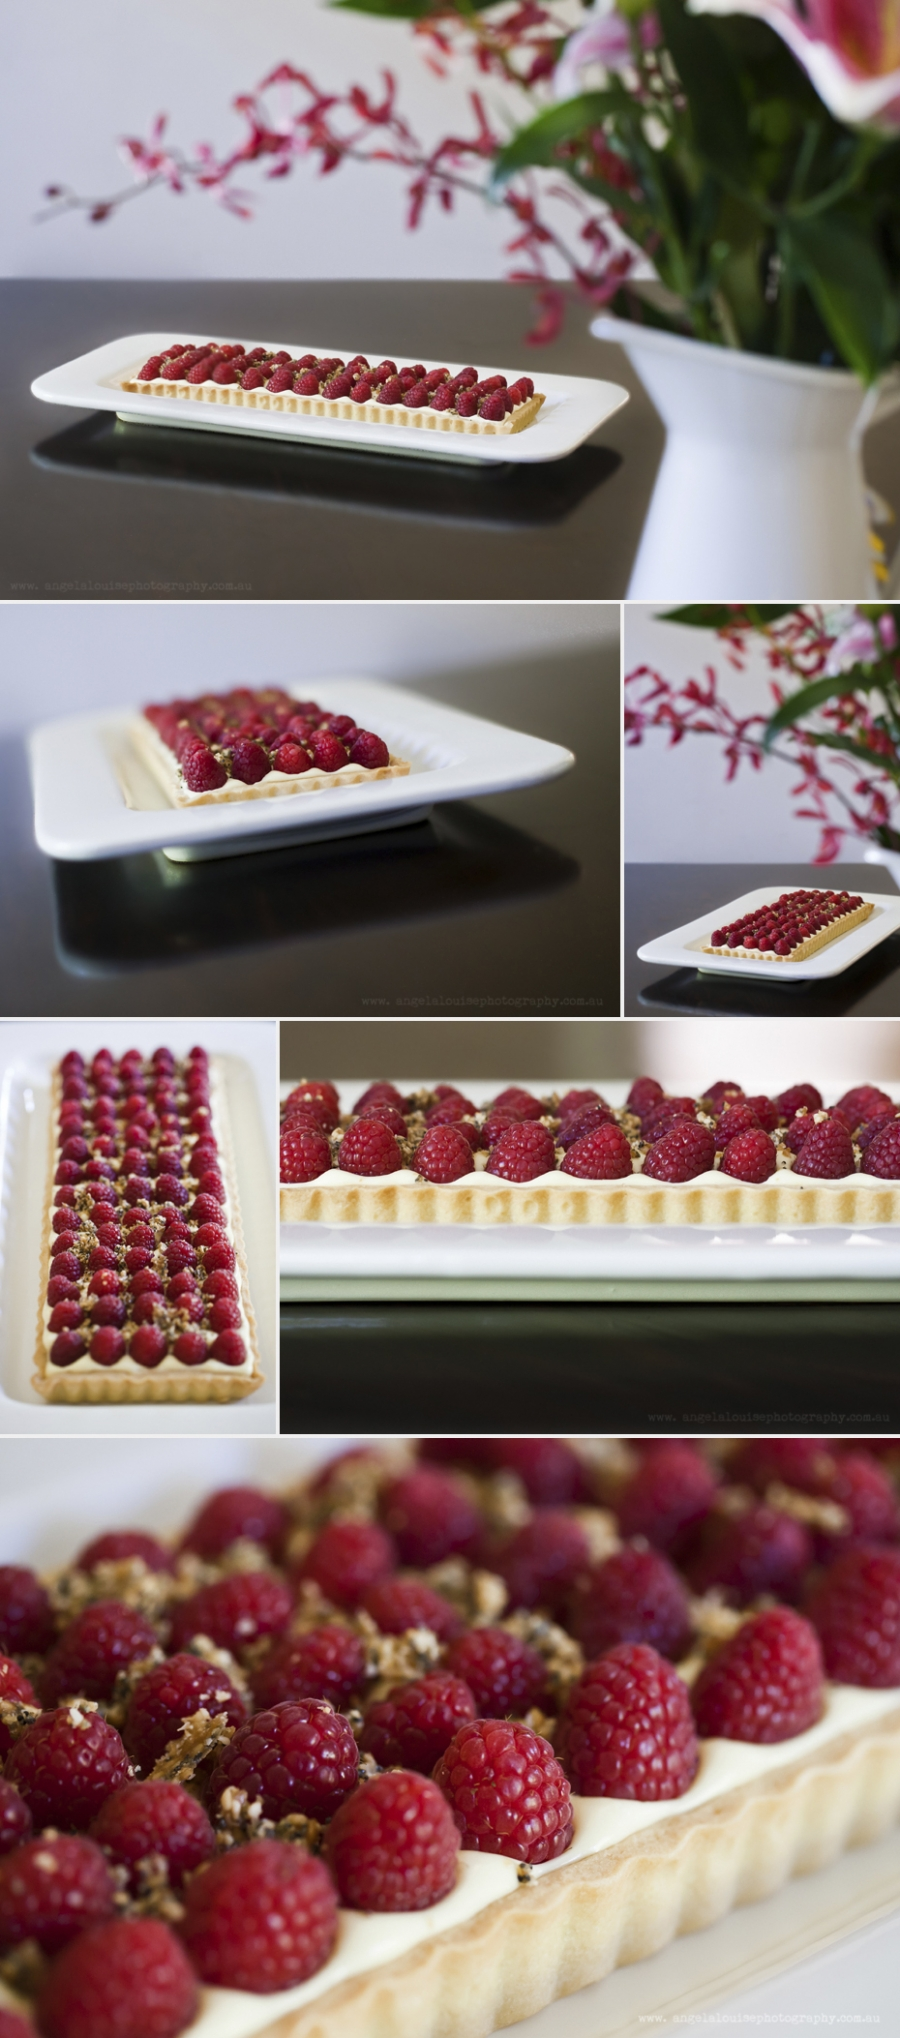 Raspberry Tart by Matt Moran